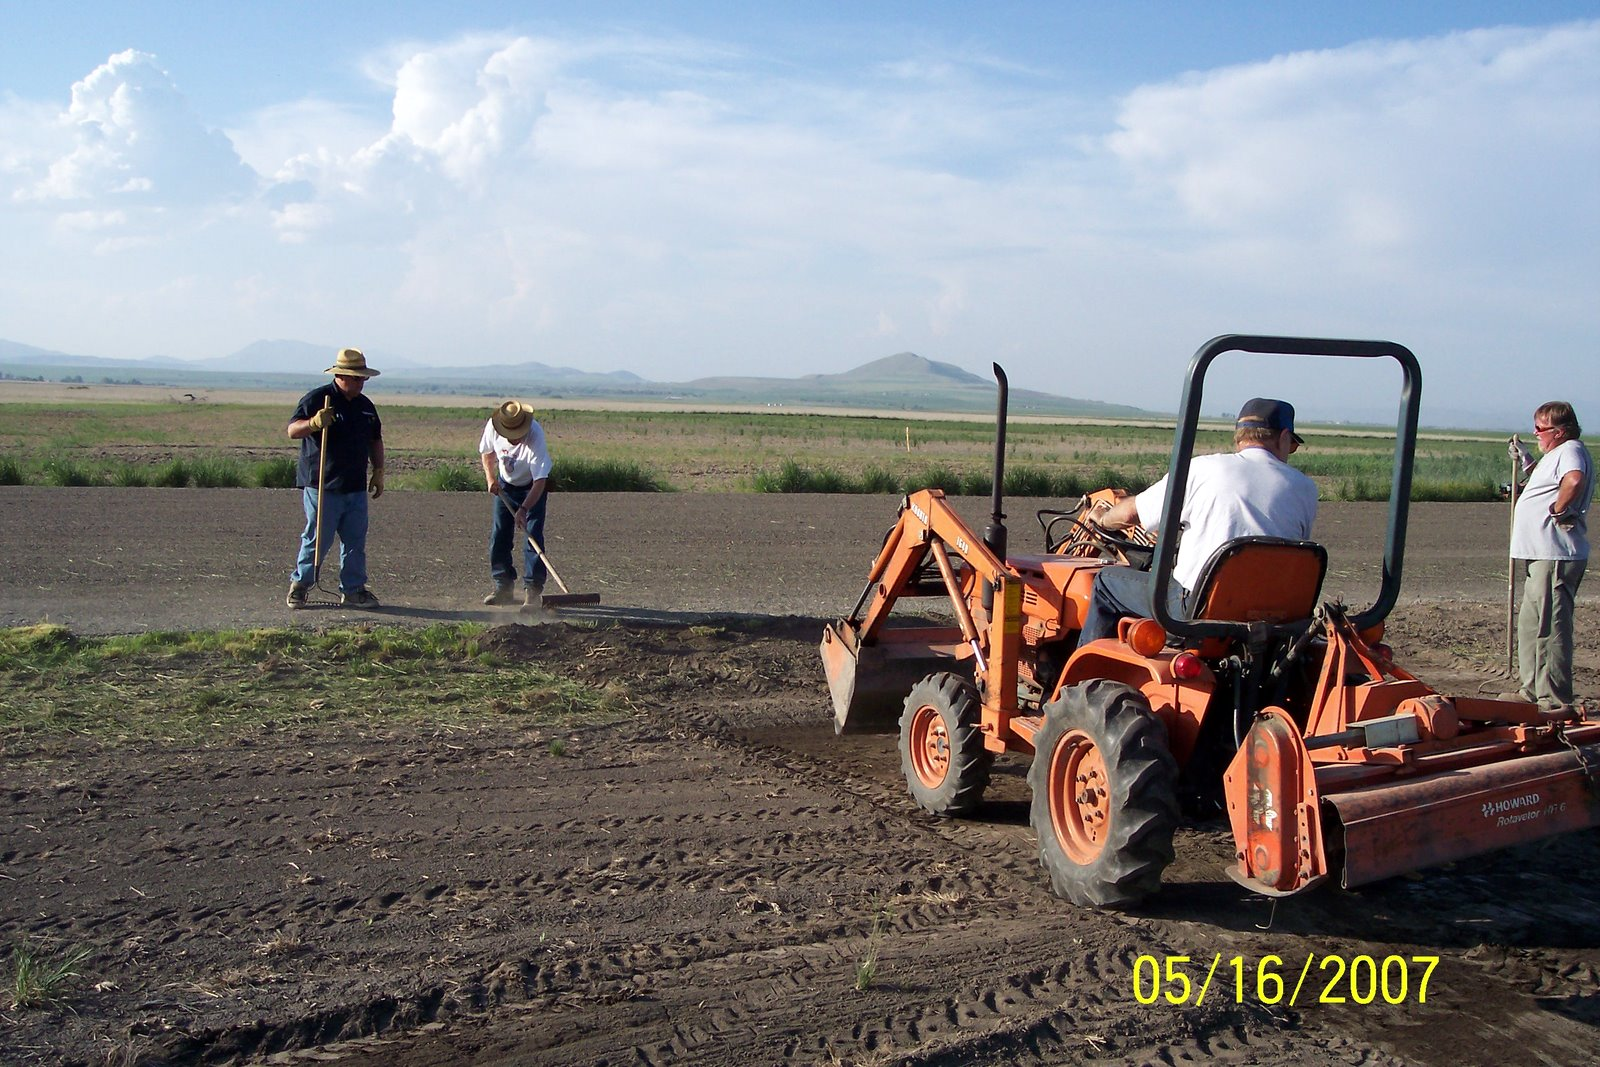 BRINGING SOIL UP TO GRADE ALONG RUNWAY EDGES. DEL BULLEN ON TRACTOR WITH MICHAEL SMITH, NATE FRIEDLI AND RICK JENSEN RAKING.